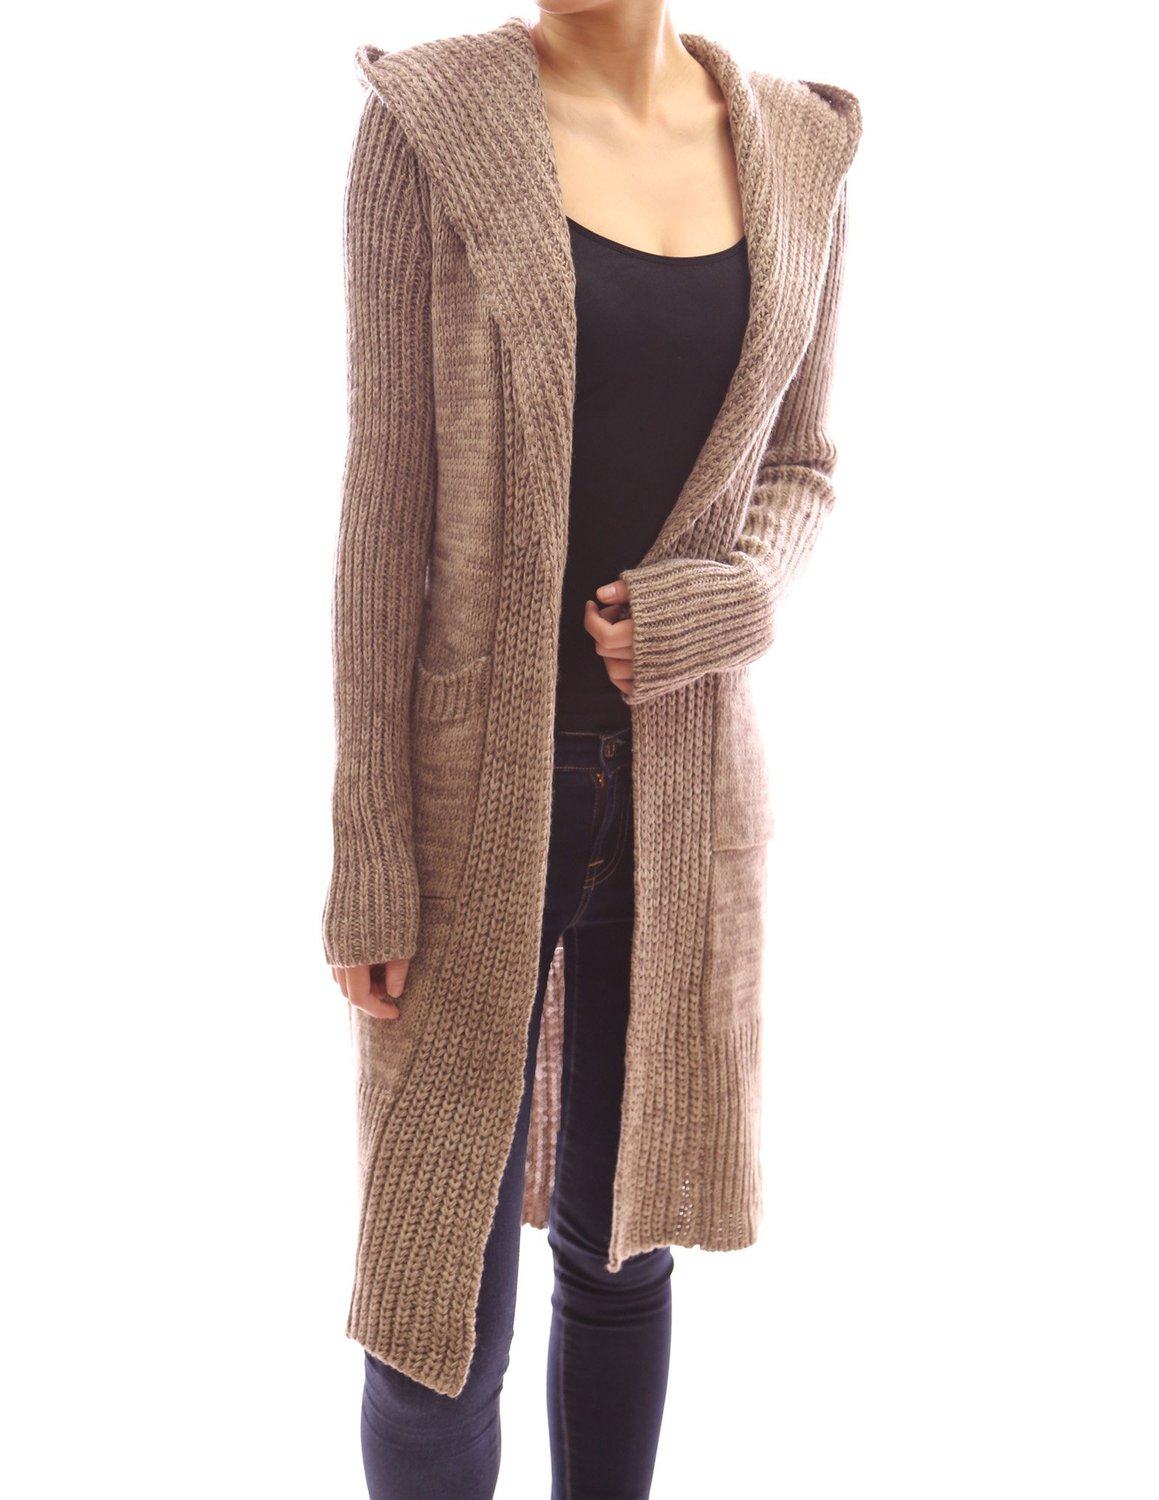 Women'S Long Hooded Sweater - Cardigan With Buttons